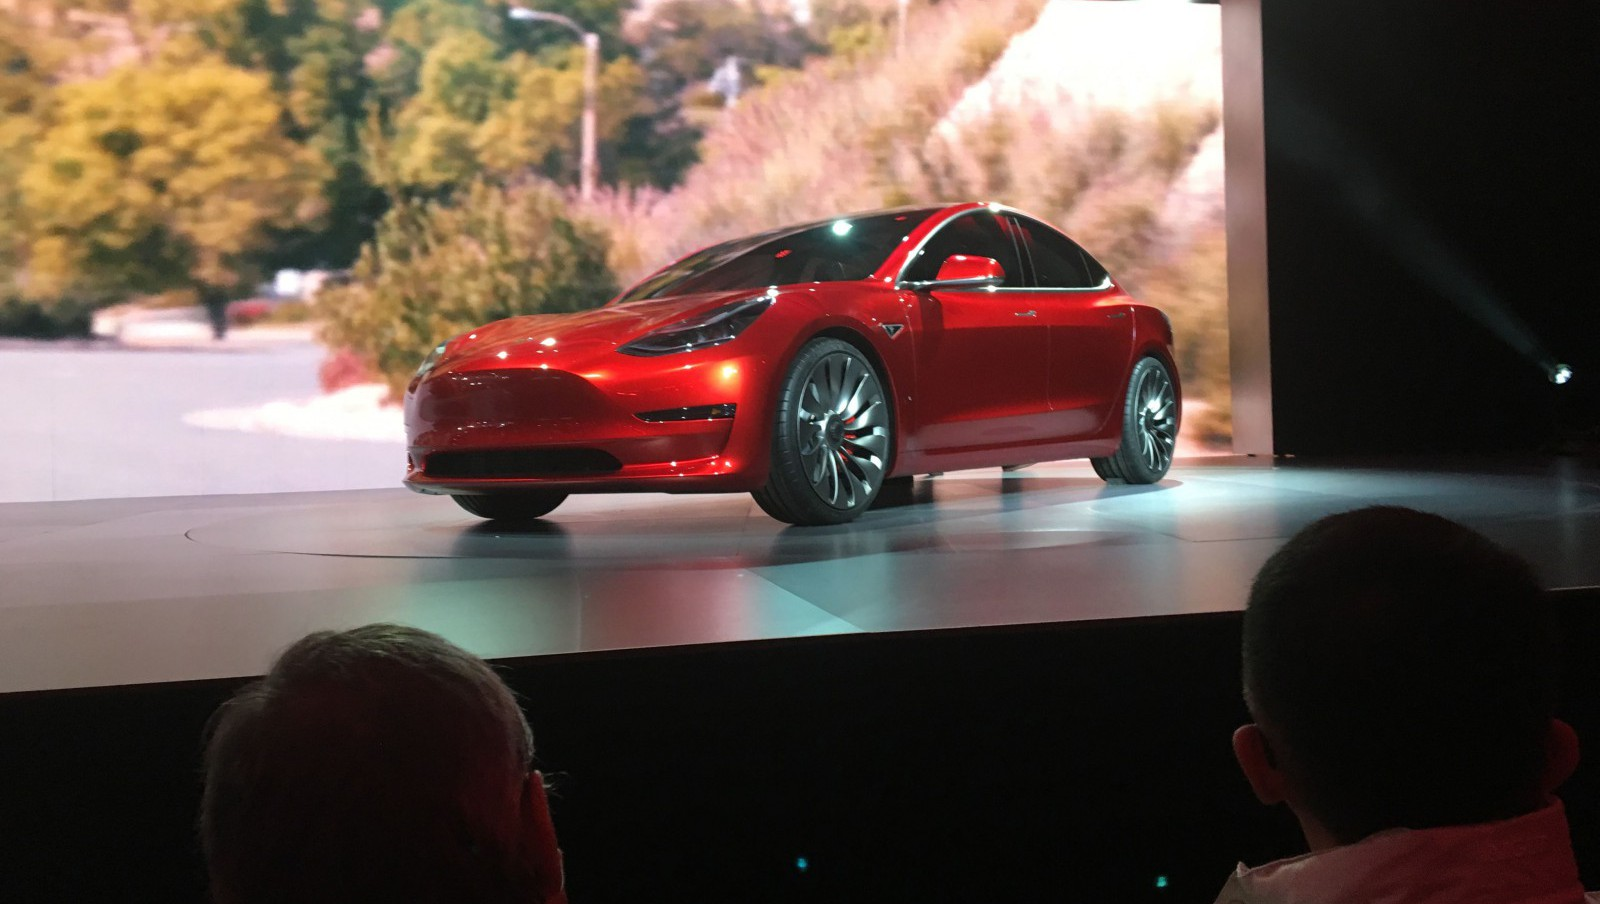 A Tesla Model 3 sedan, its first car aimed at the mass market, is displayed during its launch in Hawthorne, California, March 31, 2016. Picture taken March 31, 2016. REUTERS/Joe White - RTSD6Y0